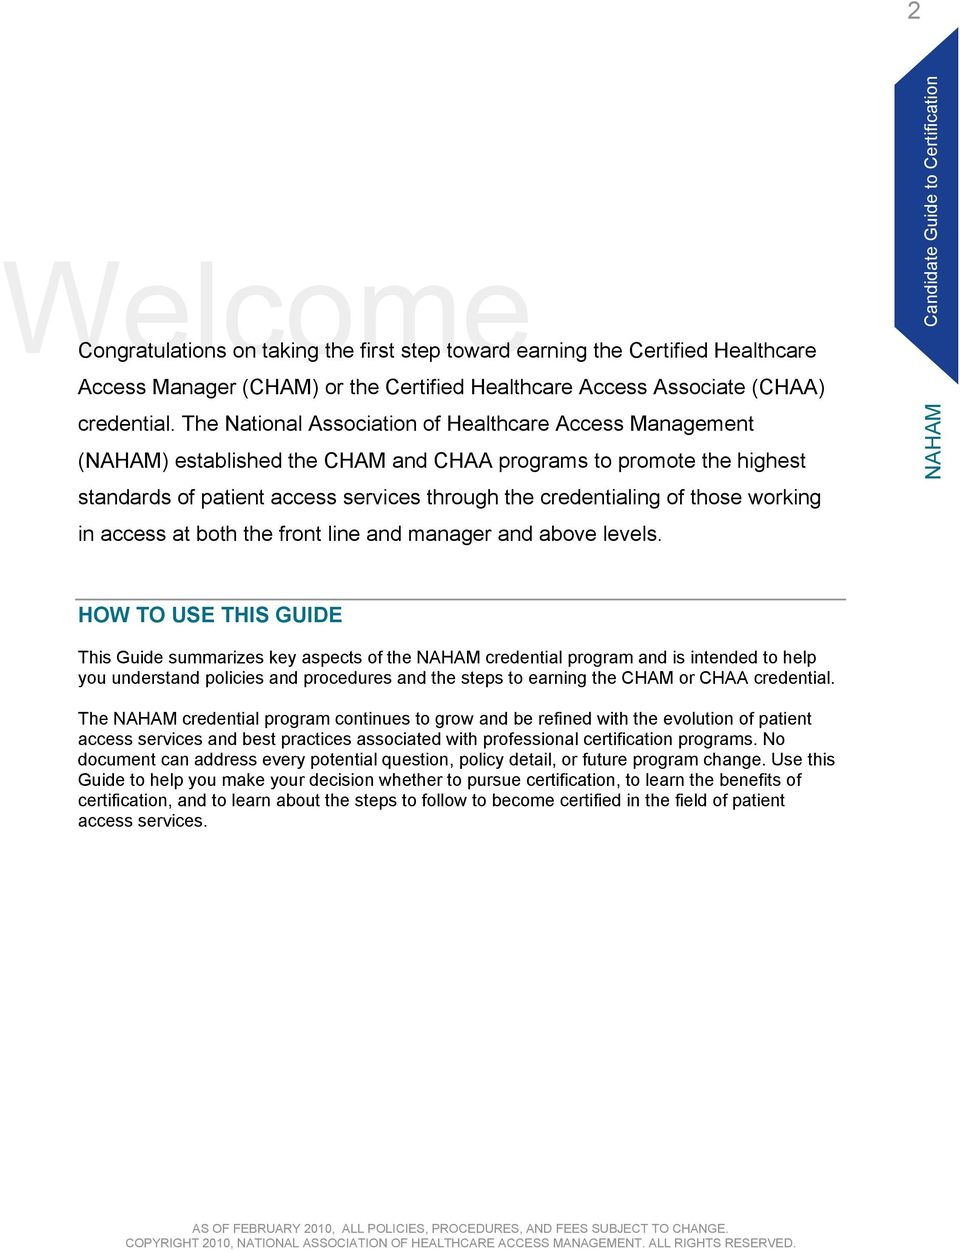 Certification National Association Of Healthcare Access Management